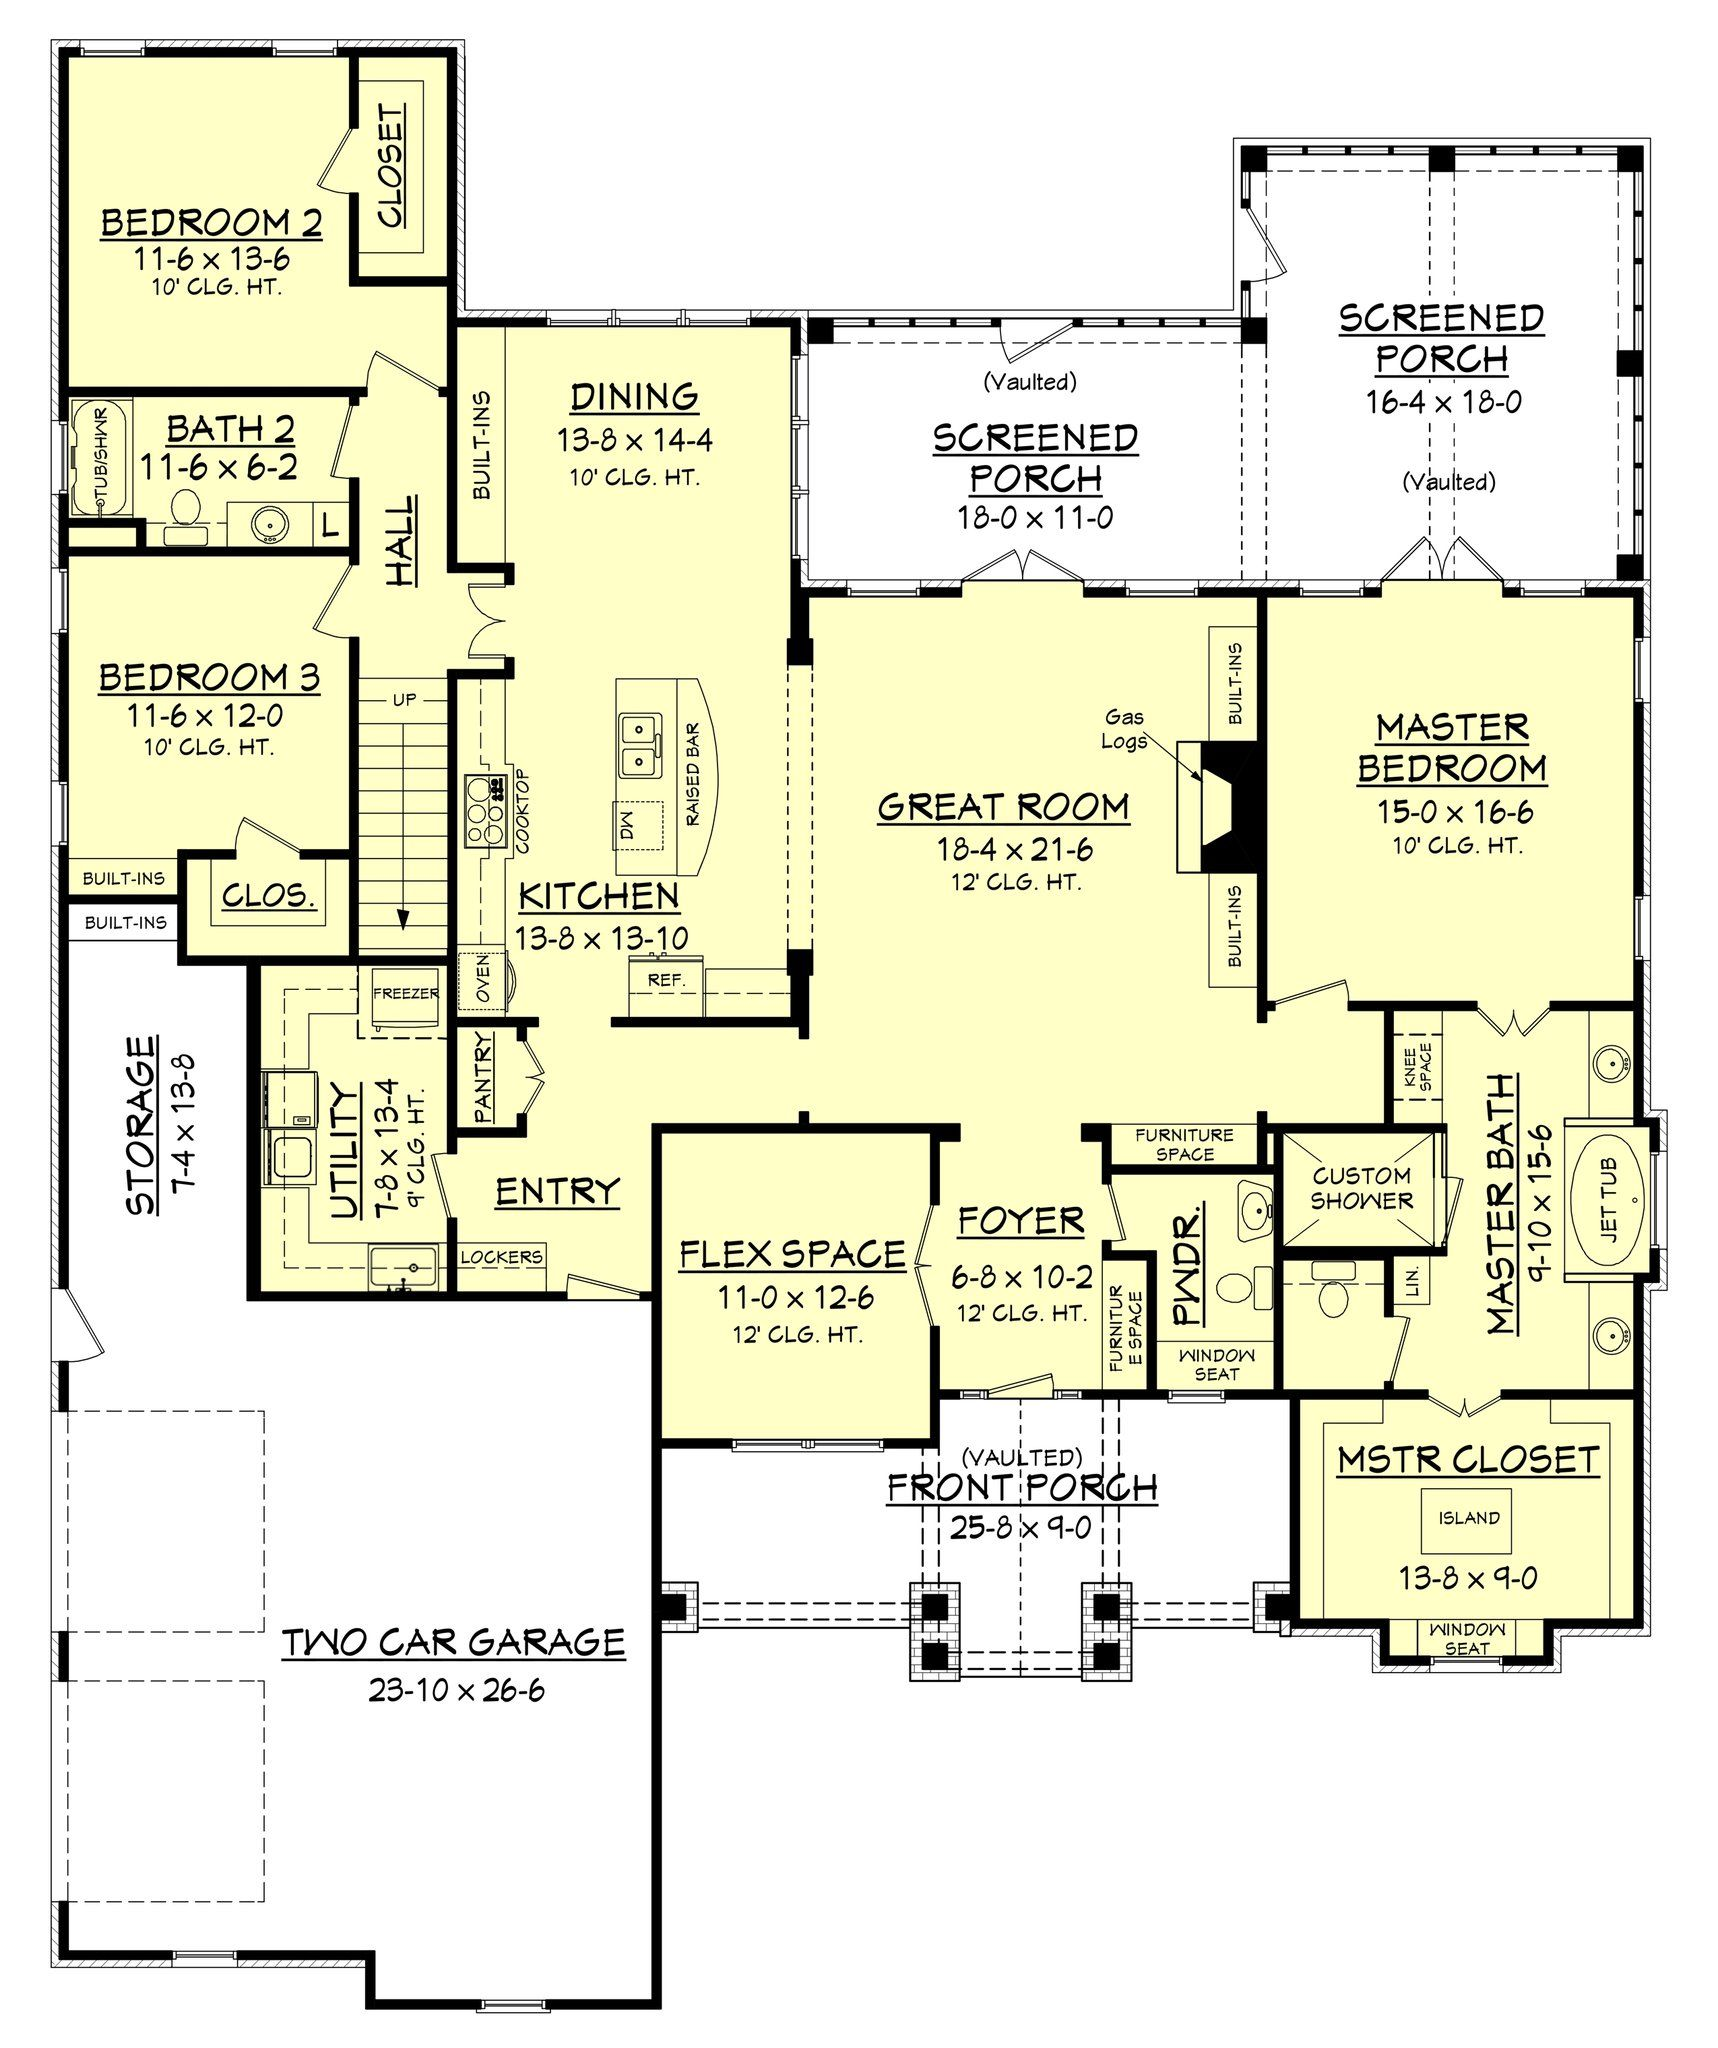 keystone house plan met bedrooms and spaces